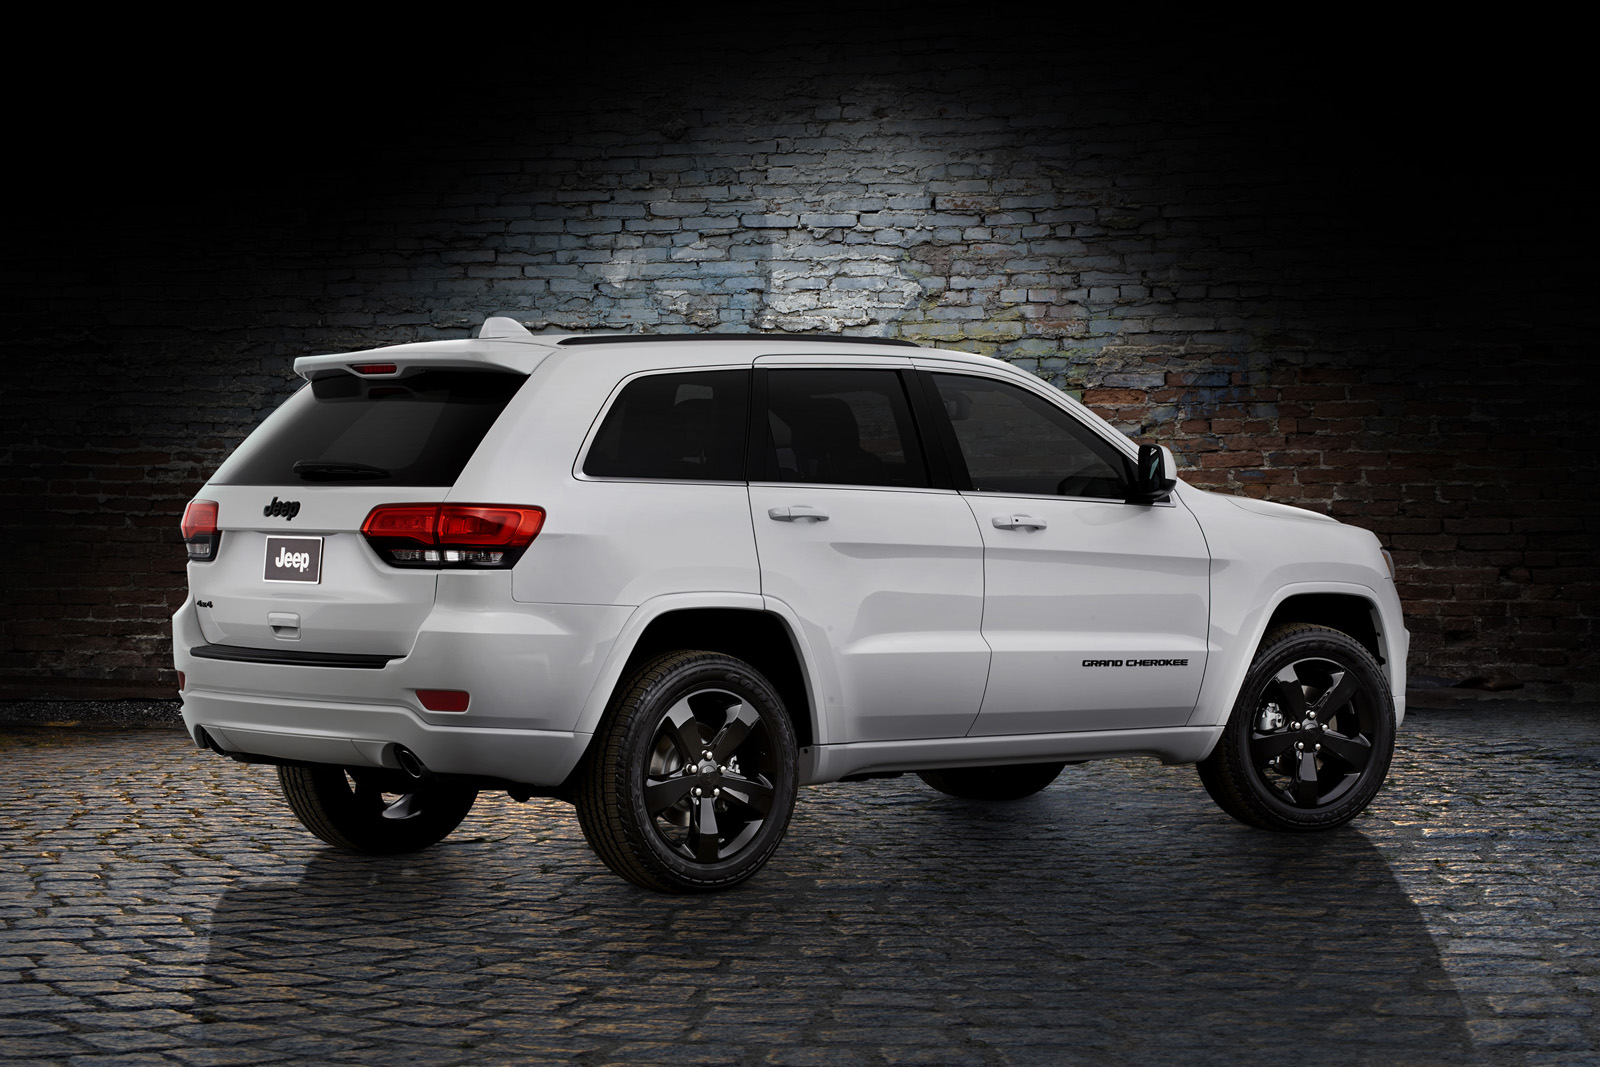 jeep jeep cherokee jeep grand cherokee jeep wrangler new cars. Cars Review. Best American Auto & Cars Review